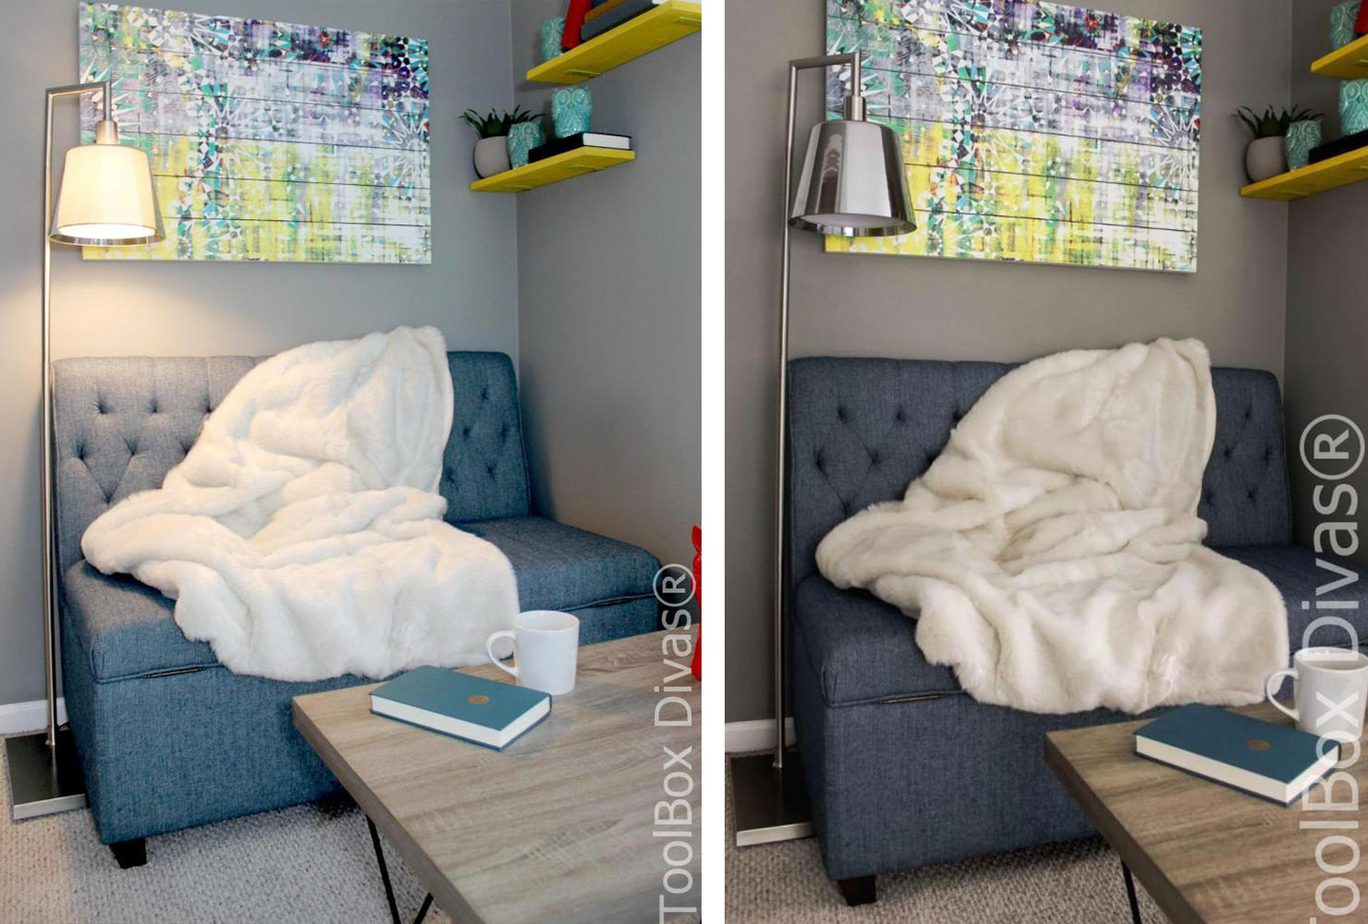 5. Go for a corner booth by simphome.com